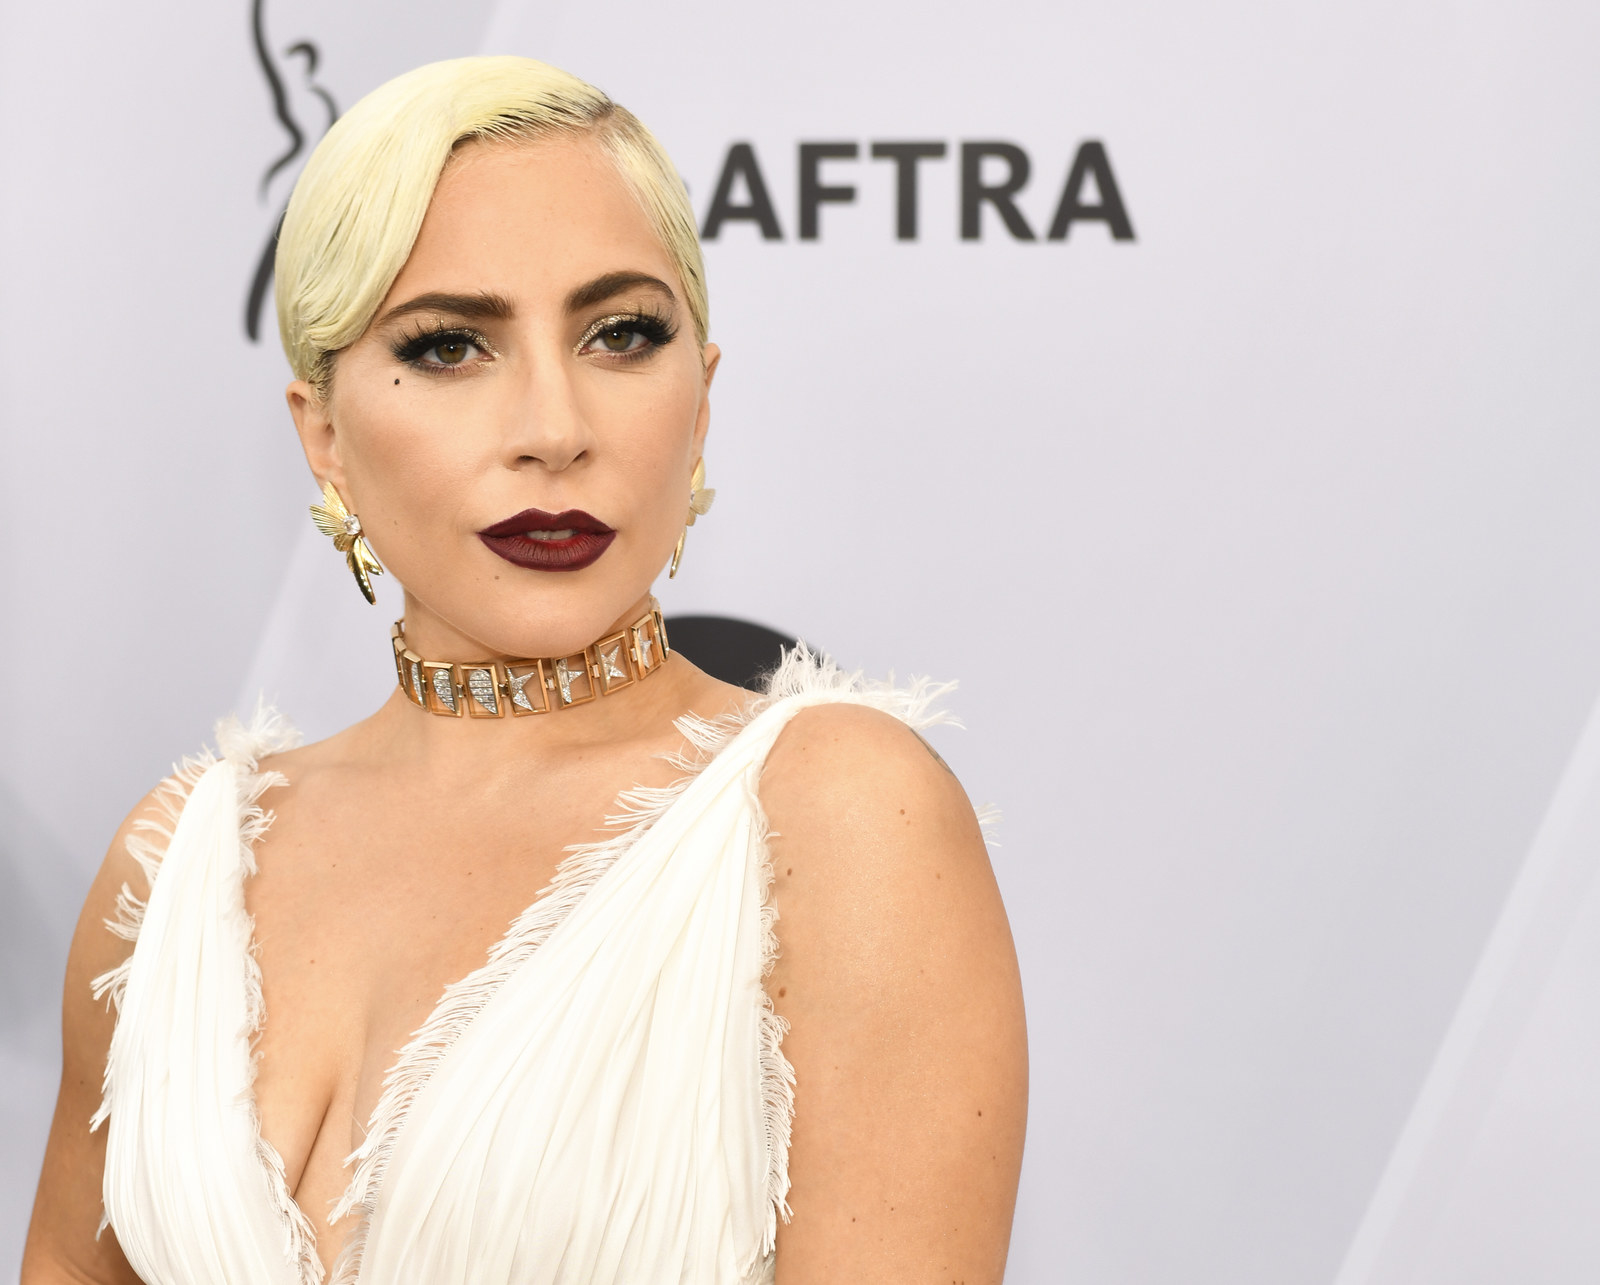 The Full Transcript Of Lady Gaga's Deposition From The Kesha And Dr. Luke Case Has Been Released